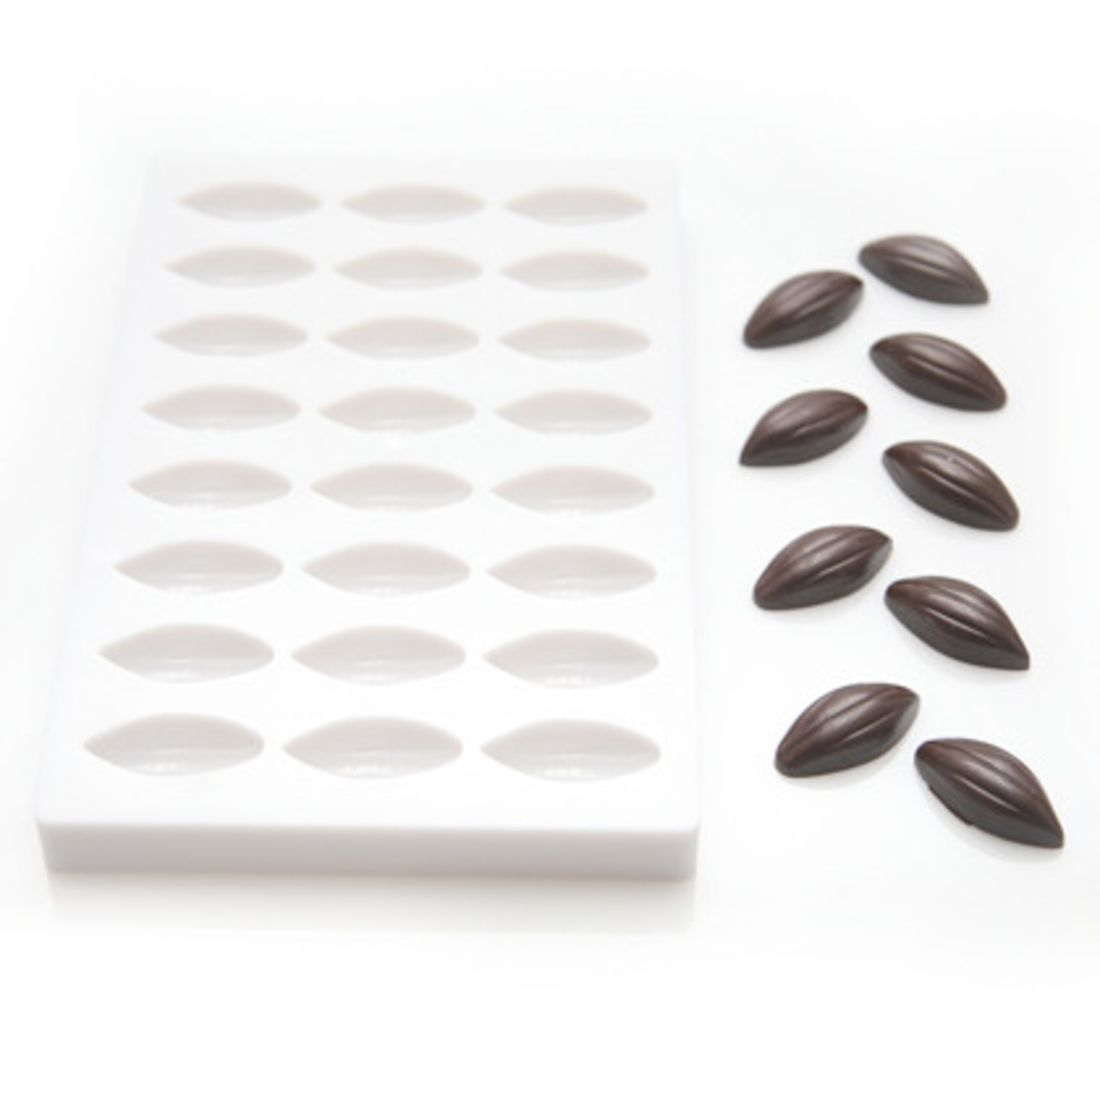 Barry Callebaut Uk Professional Chocolate Mould